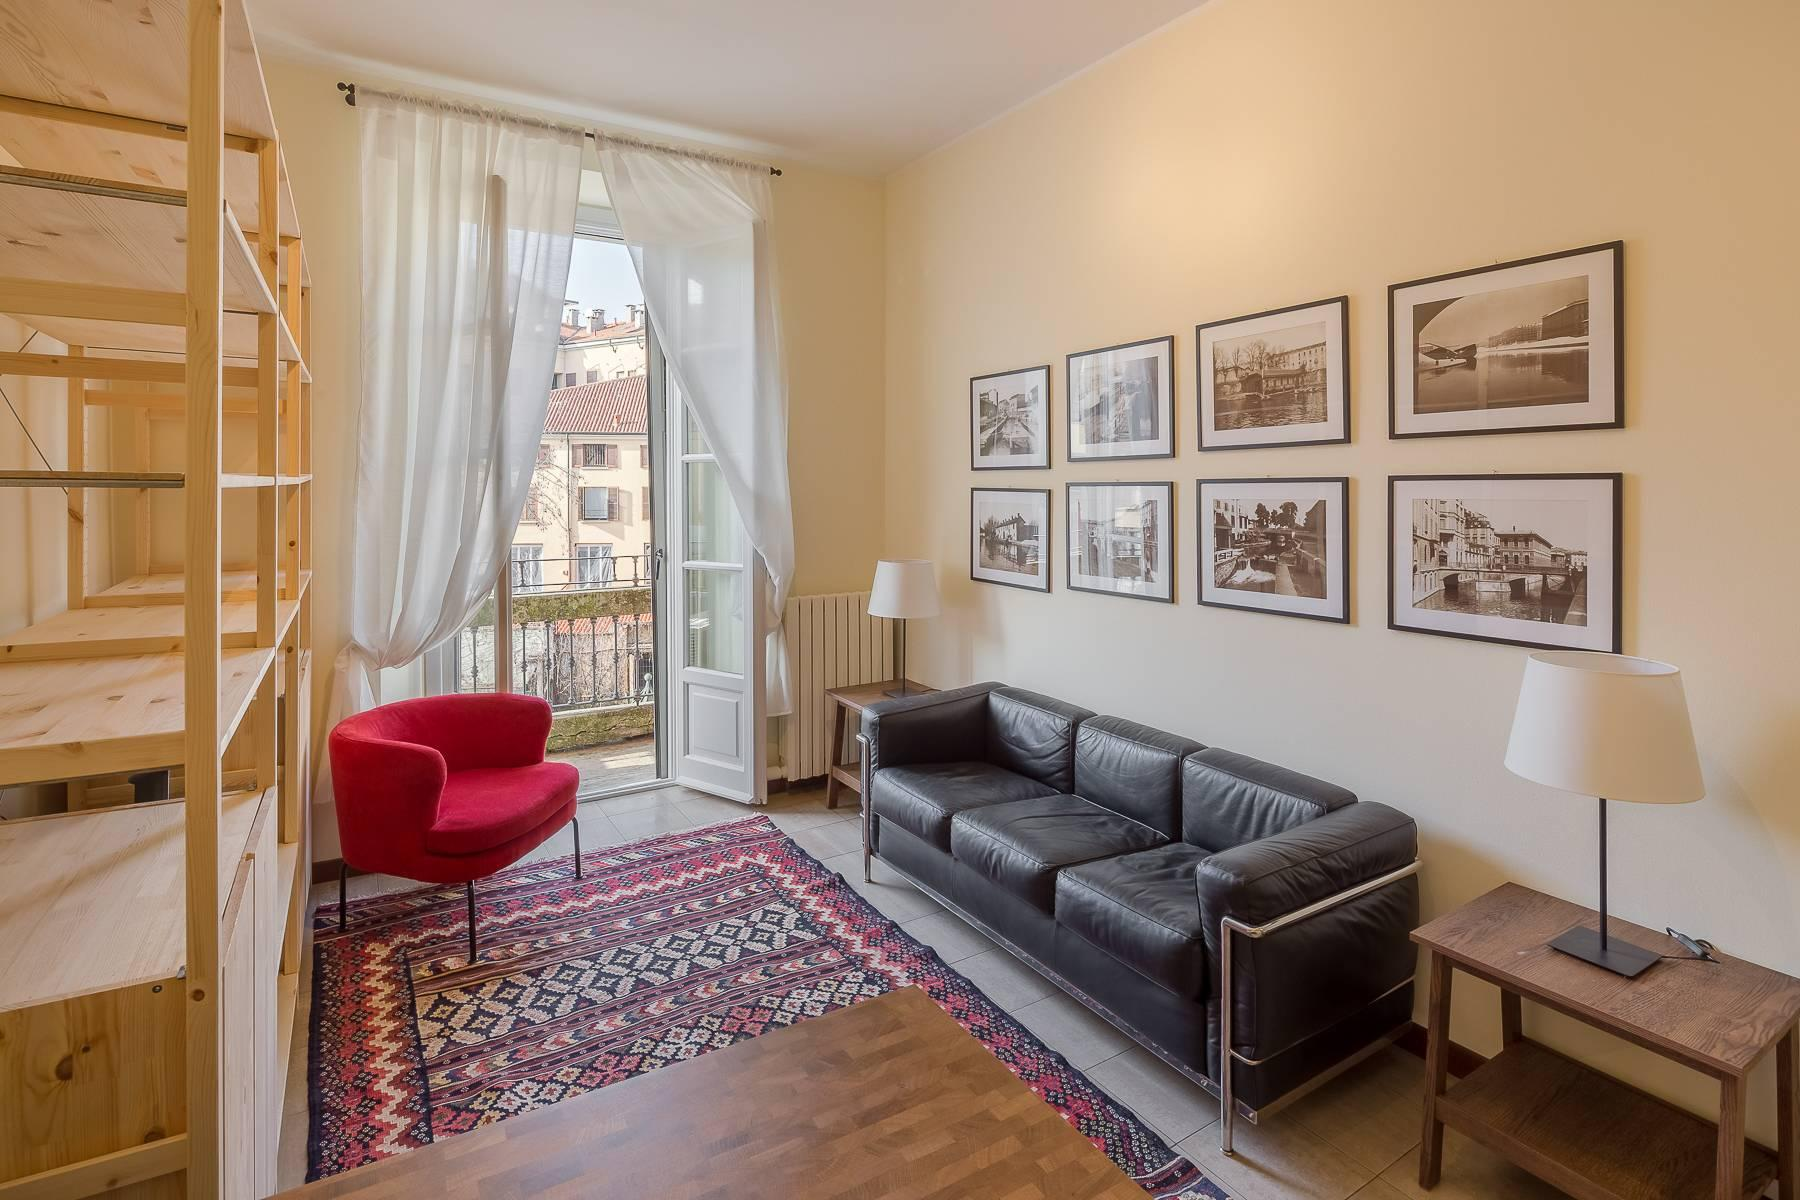 Delightful furnished apartment for rent in Via San Marco - 1